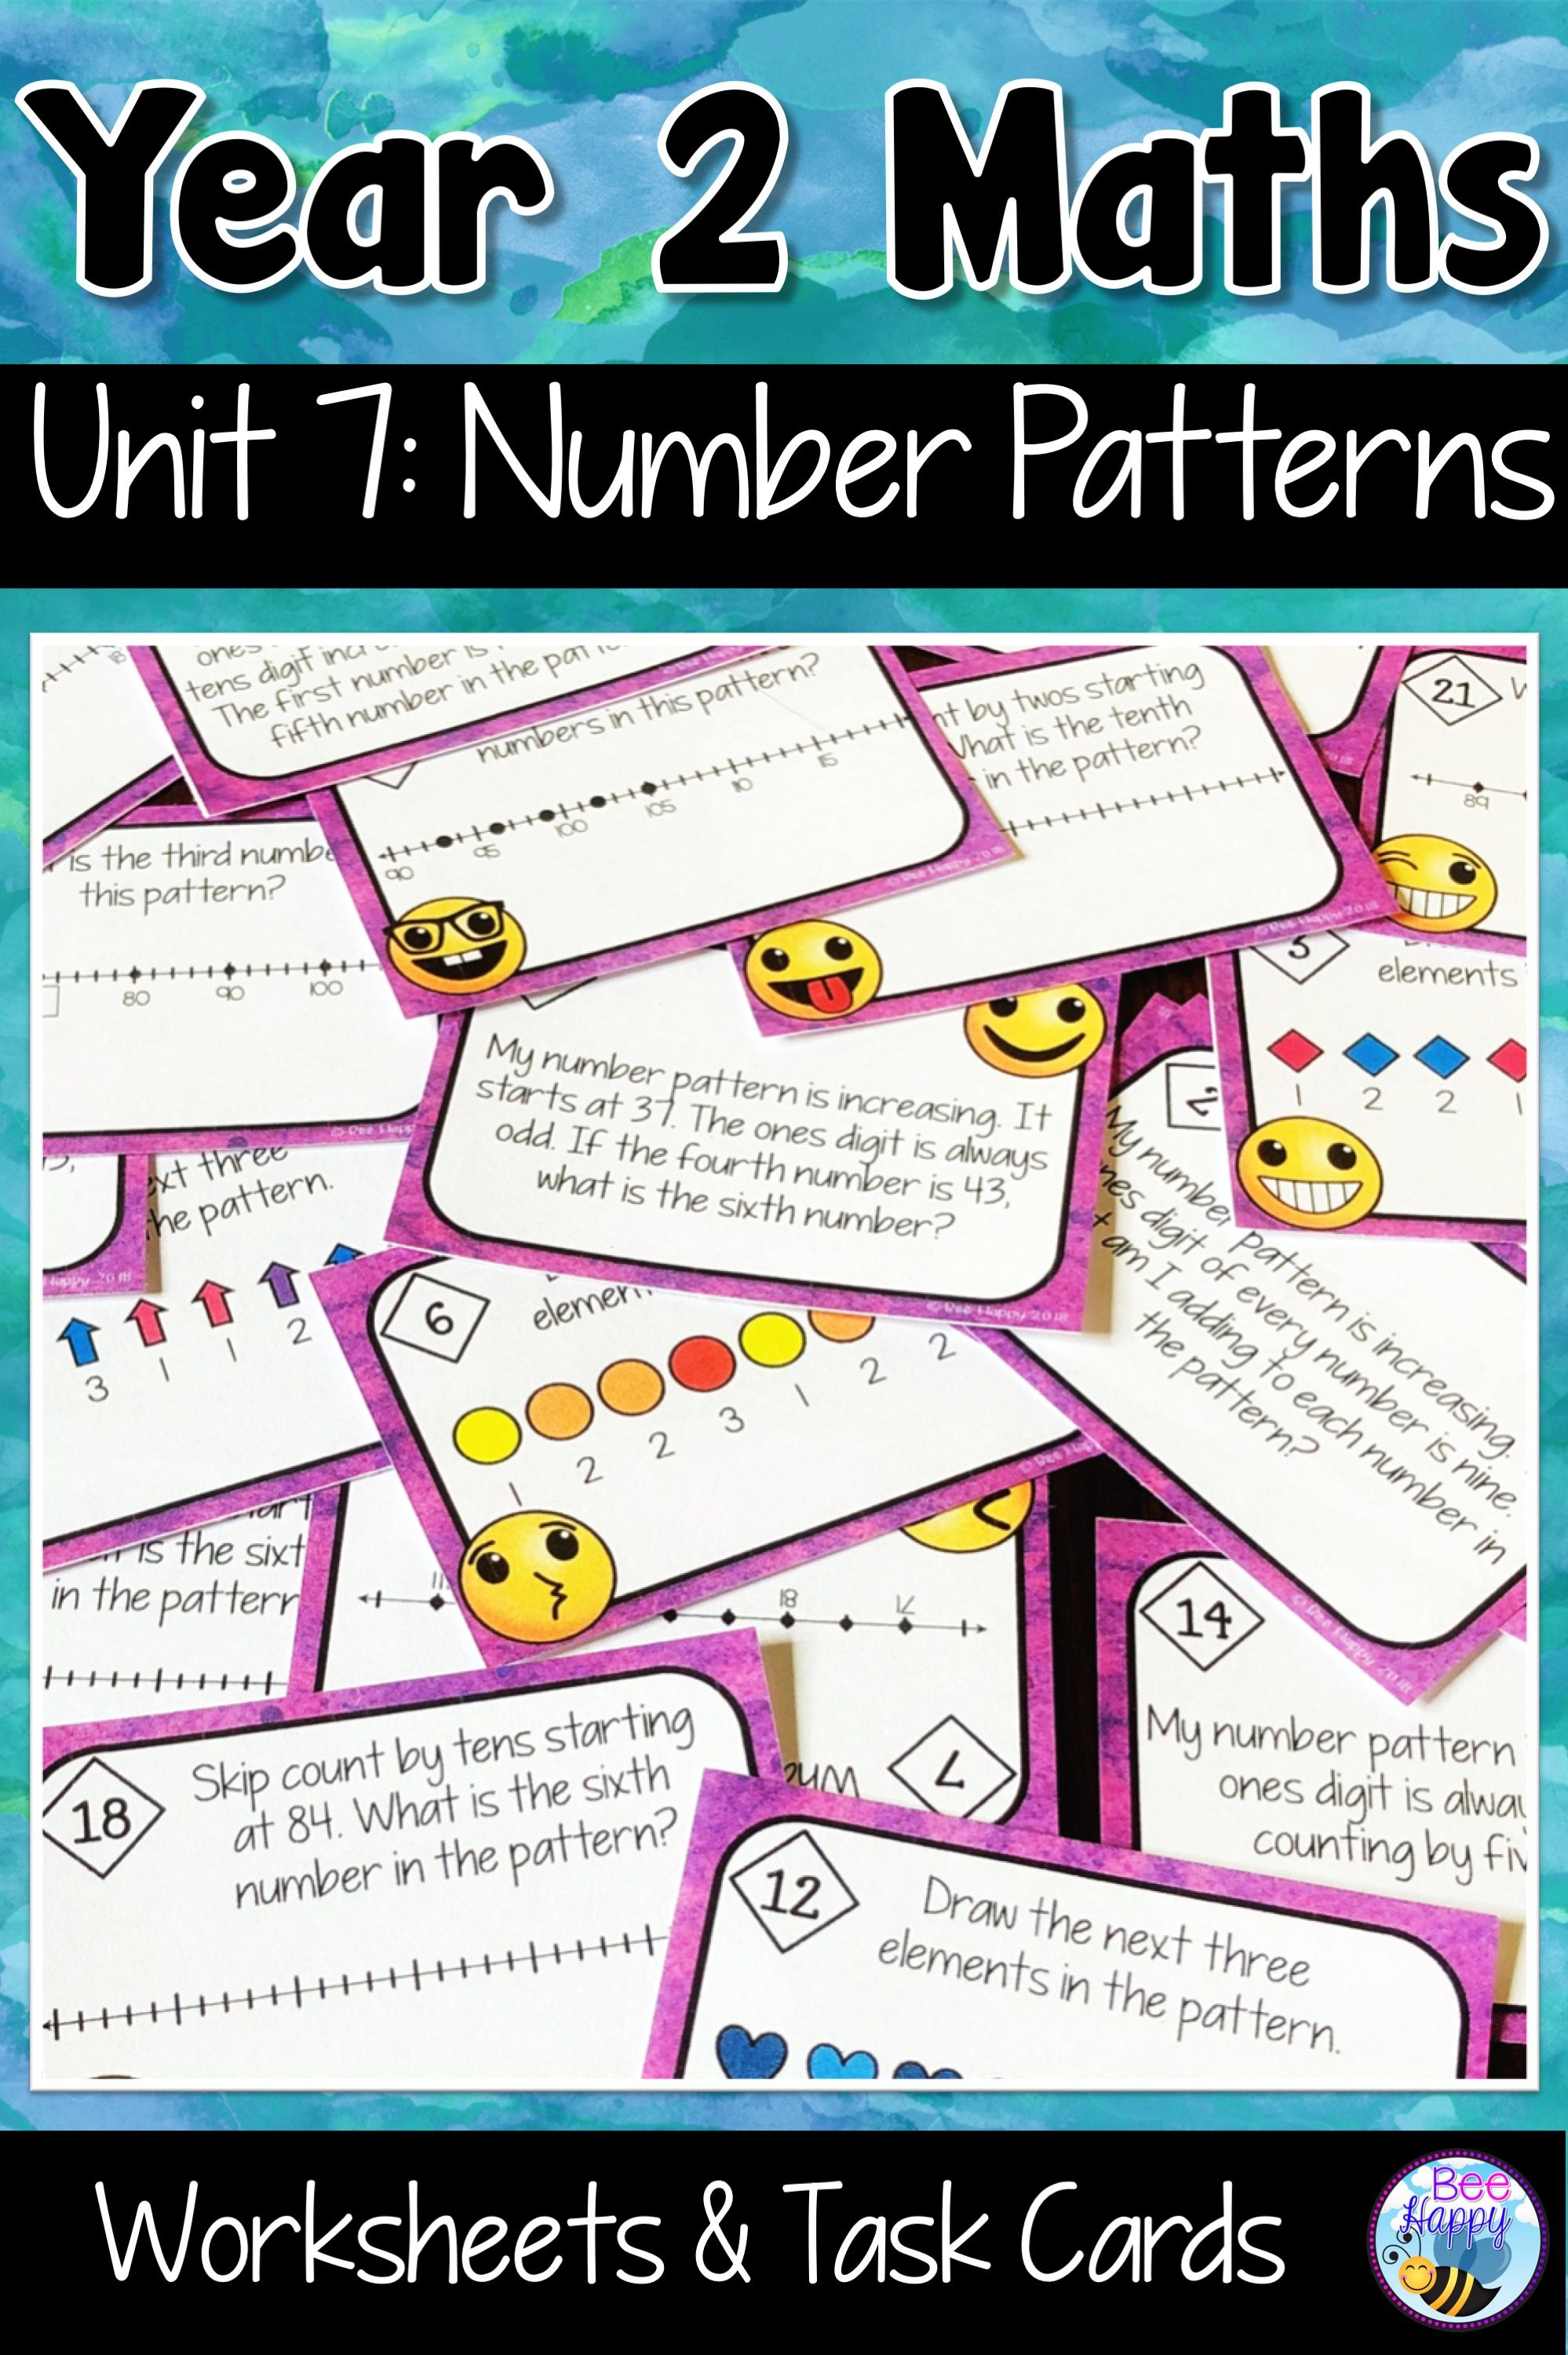 Australian Curriculum Aligned Worksheets And Task Cards For Grade 2 Describing Patterns Created By Skip Count Australian Curriculum Number Patterns Curriculum [ 3000 x 1998 Pixel ]